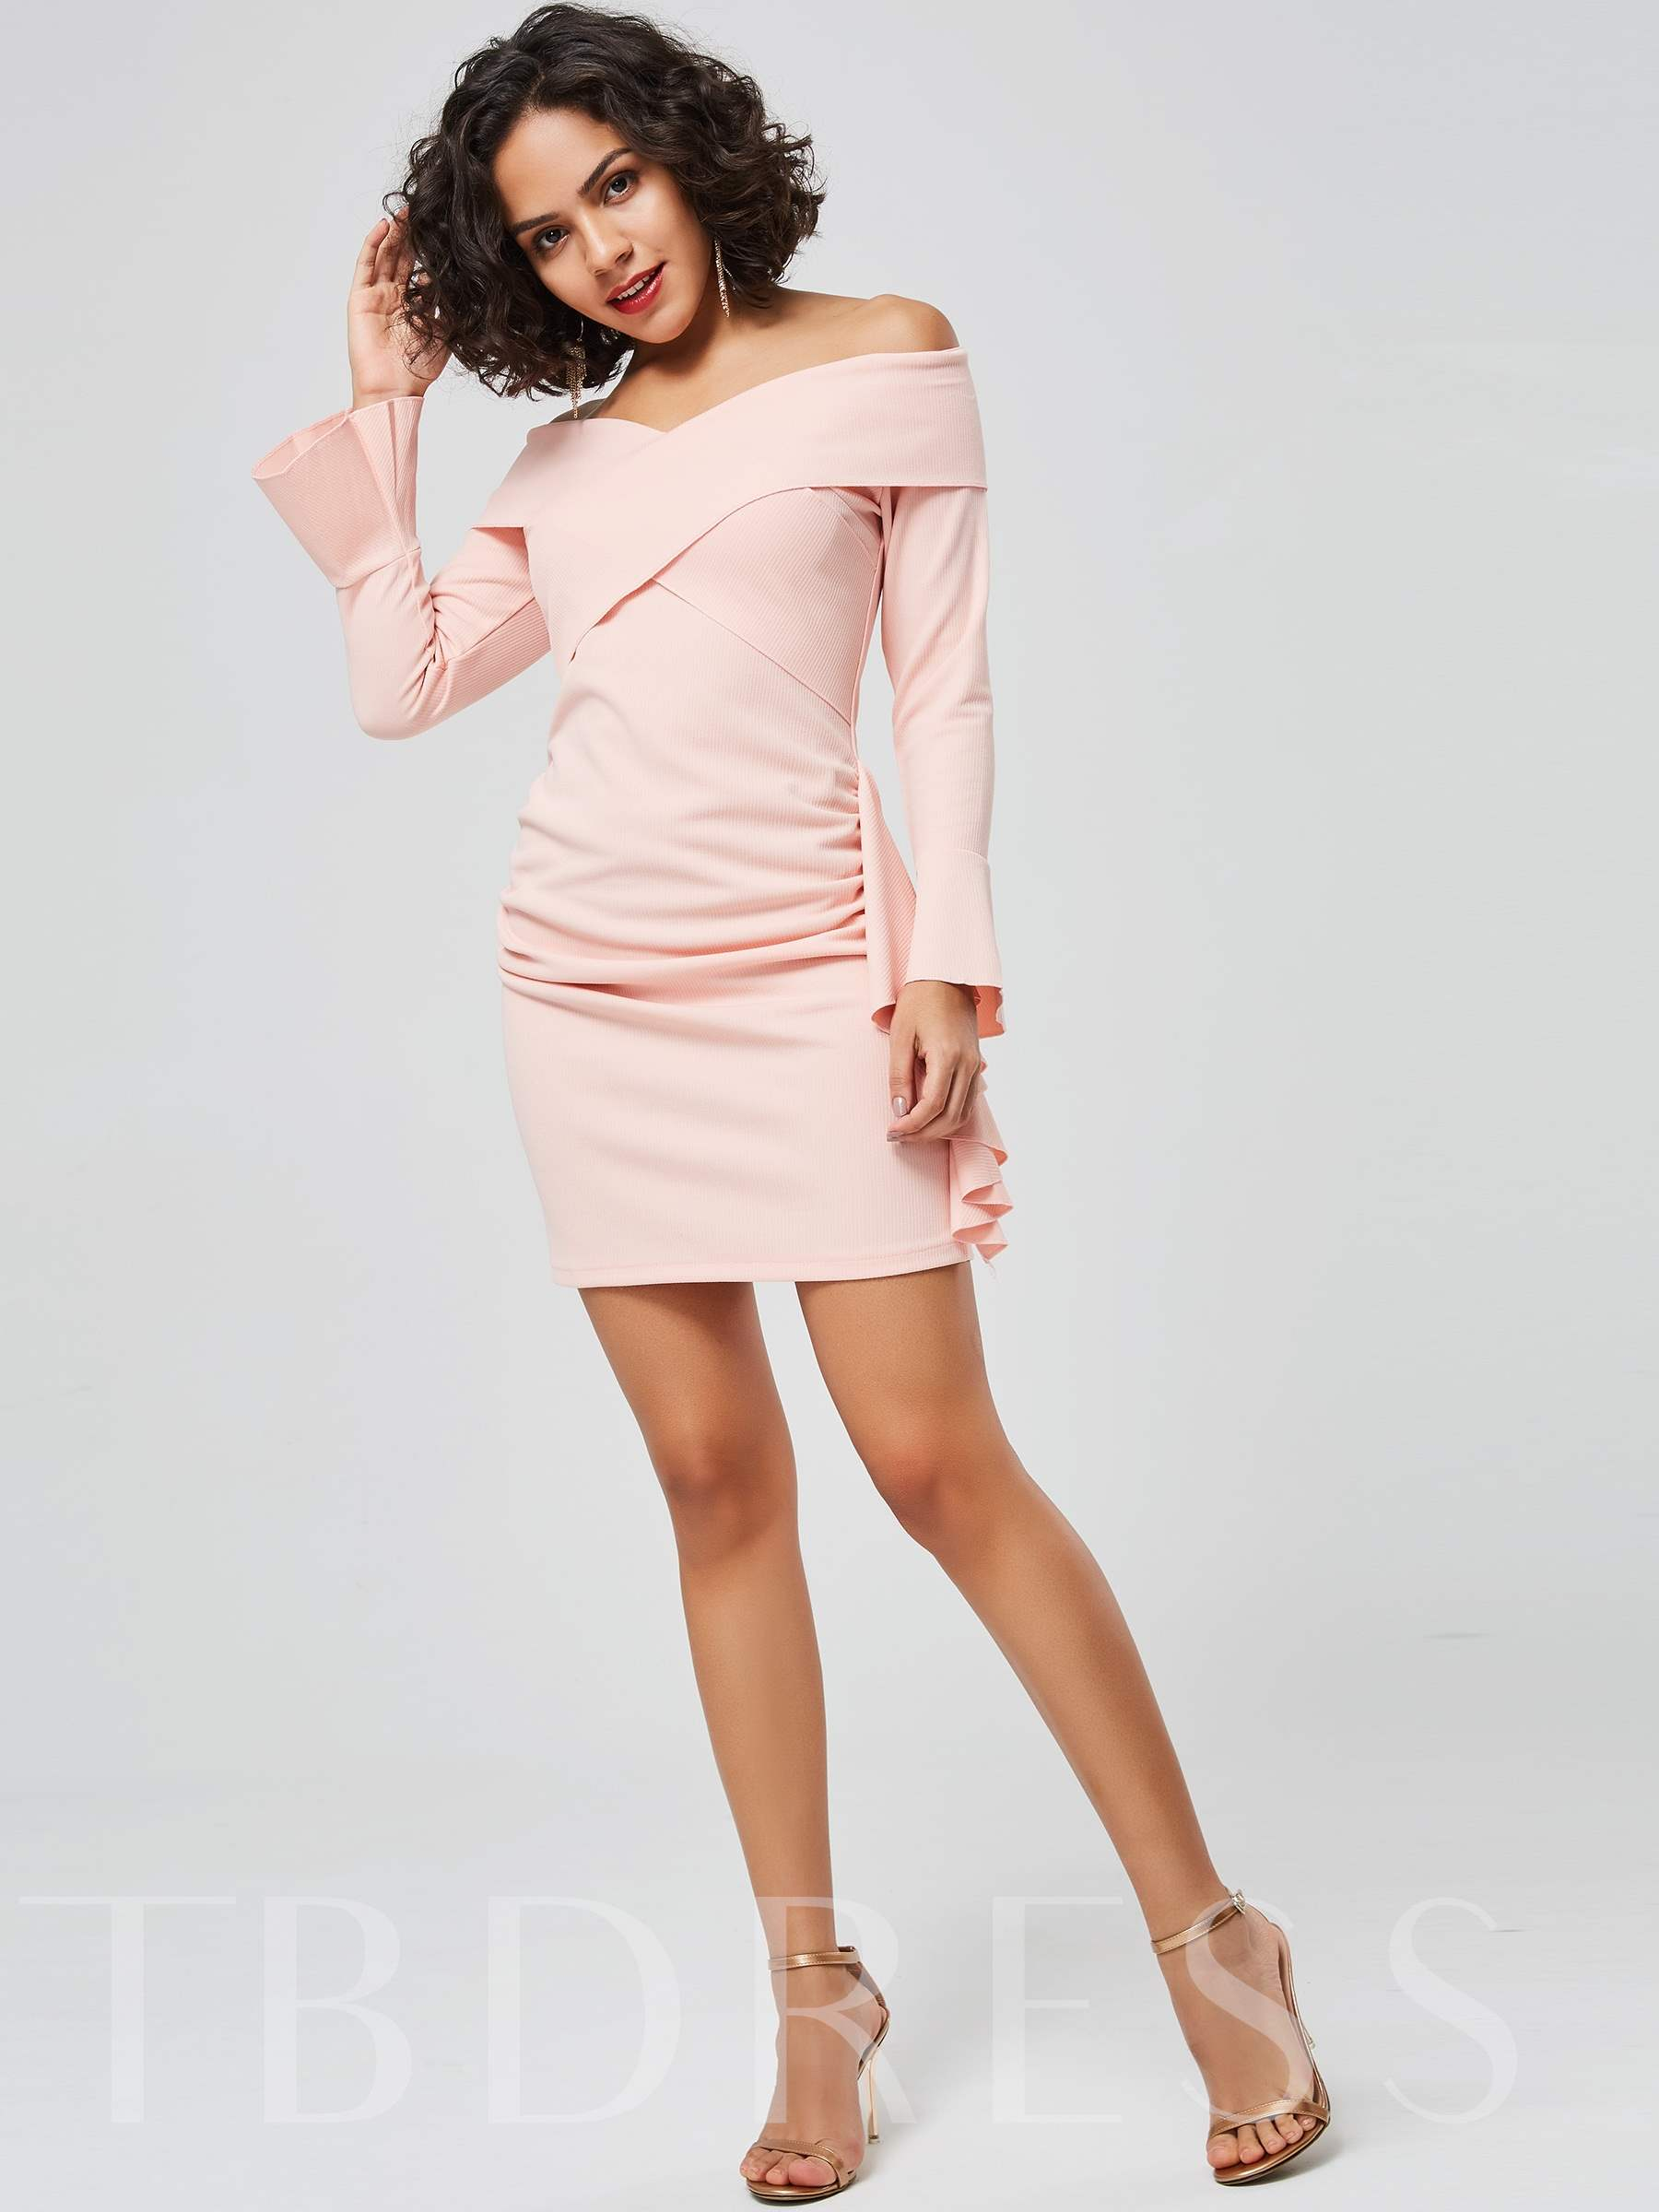 Buy Off Shoulder Flare Sleeve Bodycon Dress, Spring,Summer,Fall, 13383993 for $19.89 in TBDress store